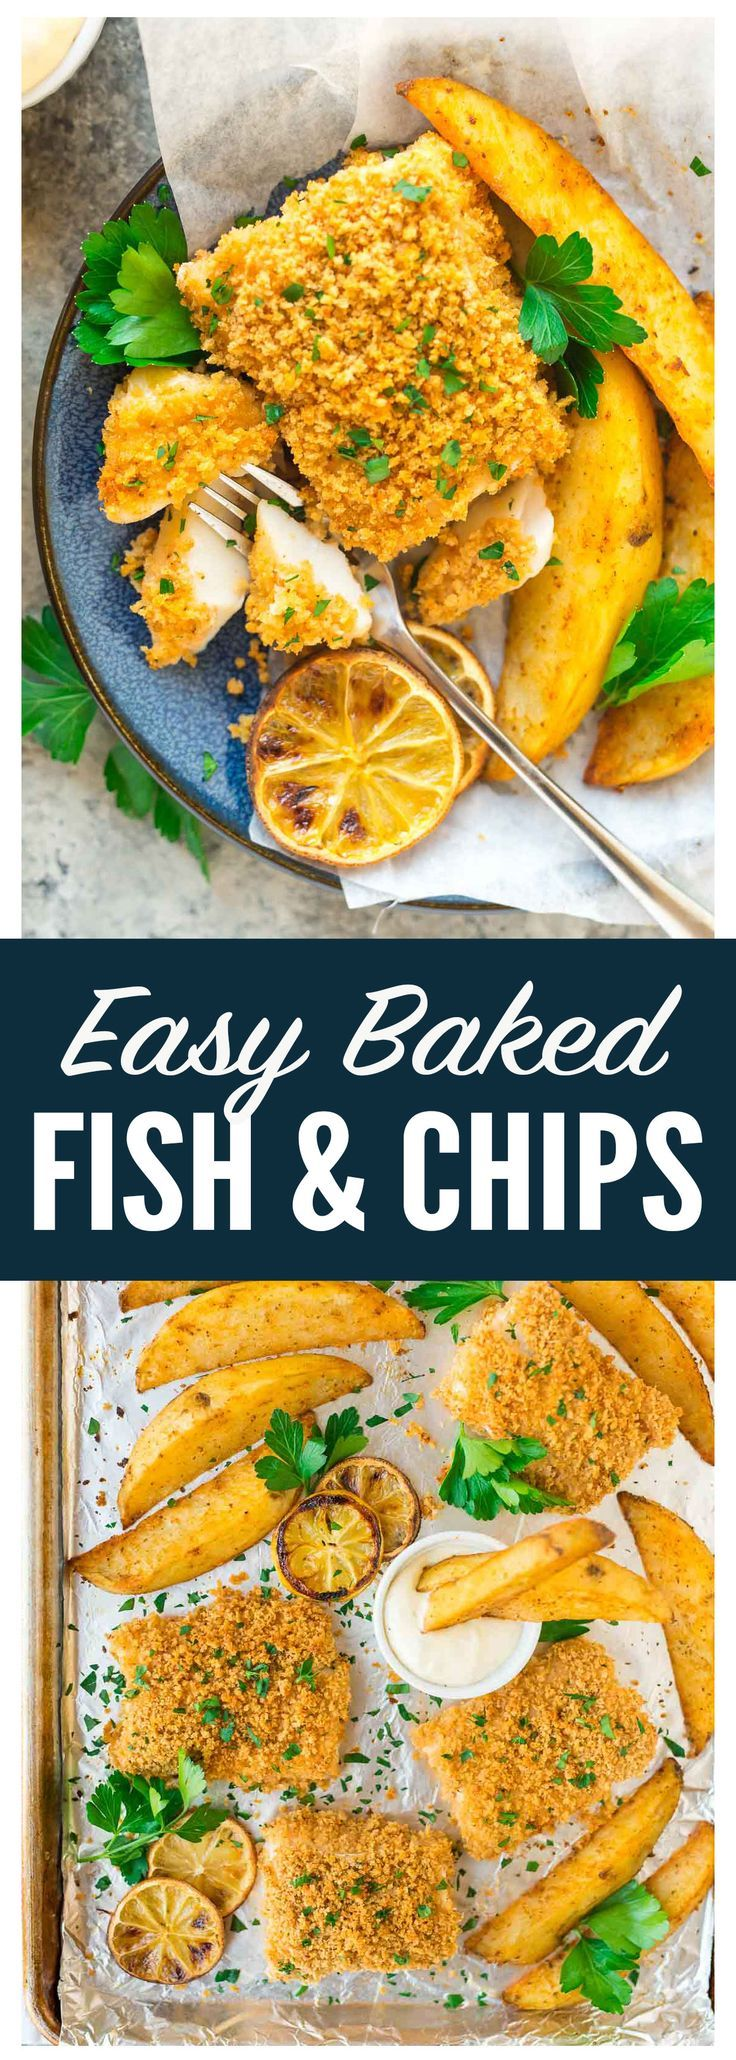 Easy Oven Baked Fish and Chips — A quick and healthy version of classic fish and chips that's baked in ONE pan. Extra crispy Panko on the outside and tender and flaky on the inside. The oven fries are PERFECTLY golden and crisp. Serve with tartar sauce for dipping. Recipe at wellplated.com | @wellplated @mccormickspice #sponsored